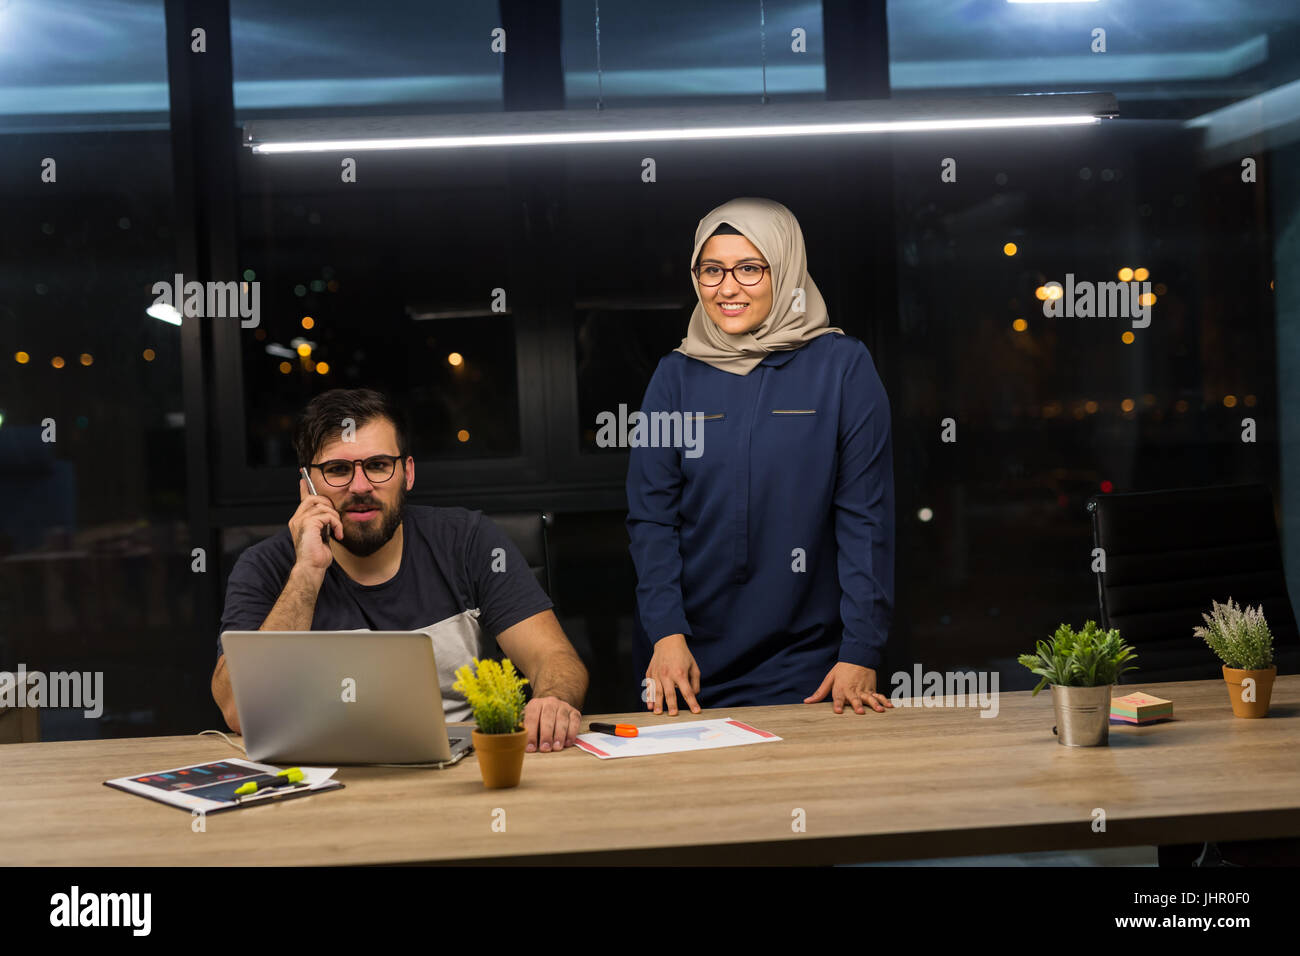 Man collaborating with woman wearing hijab. Working overtime in modern office. - Stock Image